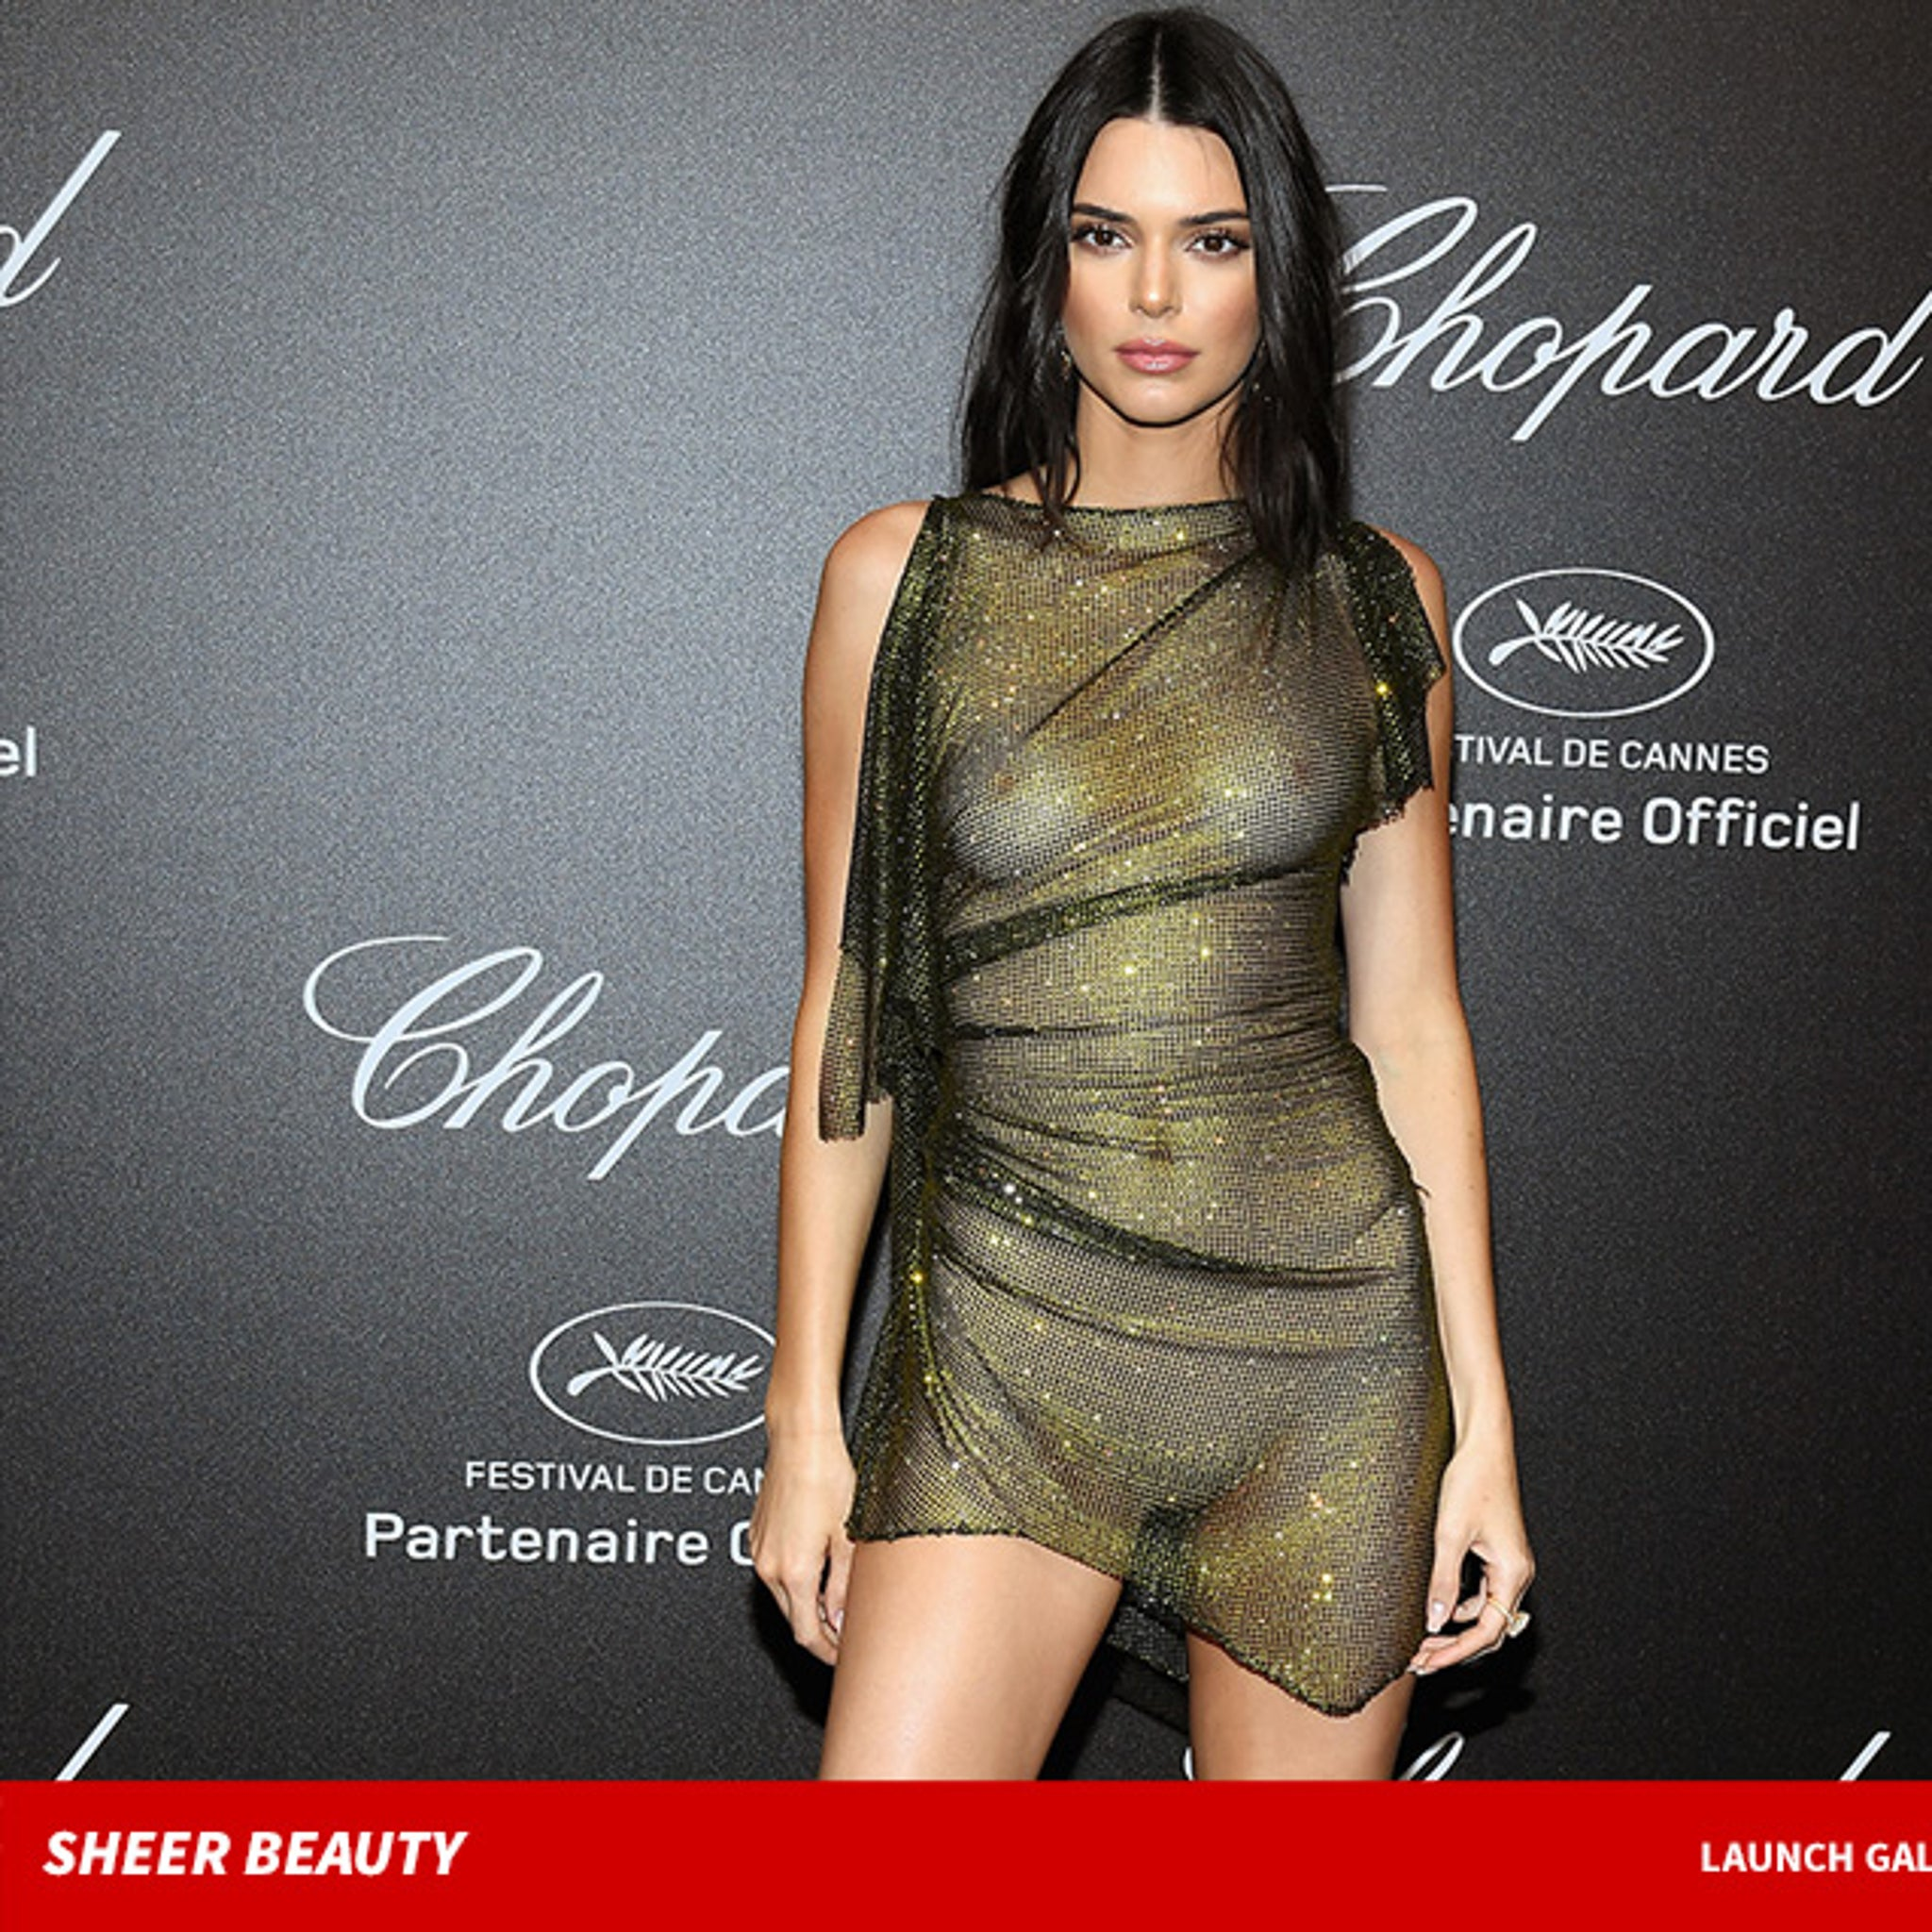 a5908ad07b0 Kendall Jenner Wears Completely See-Through Dress at Cannes